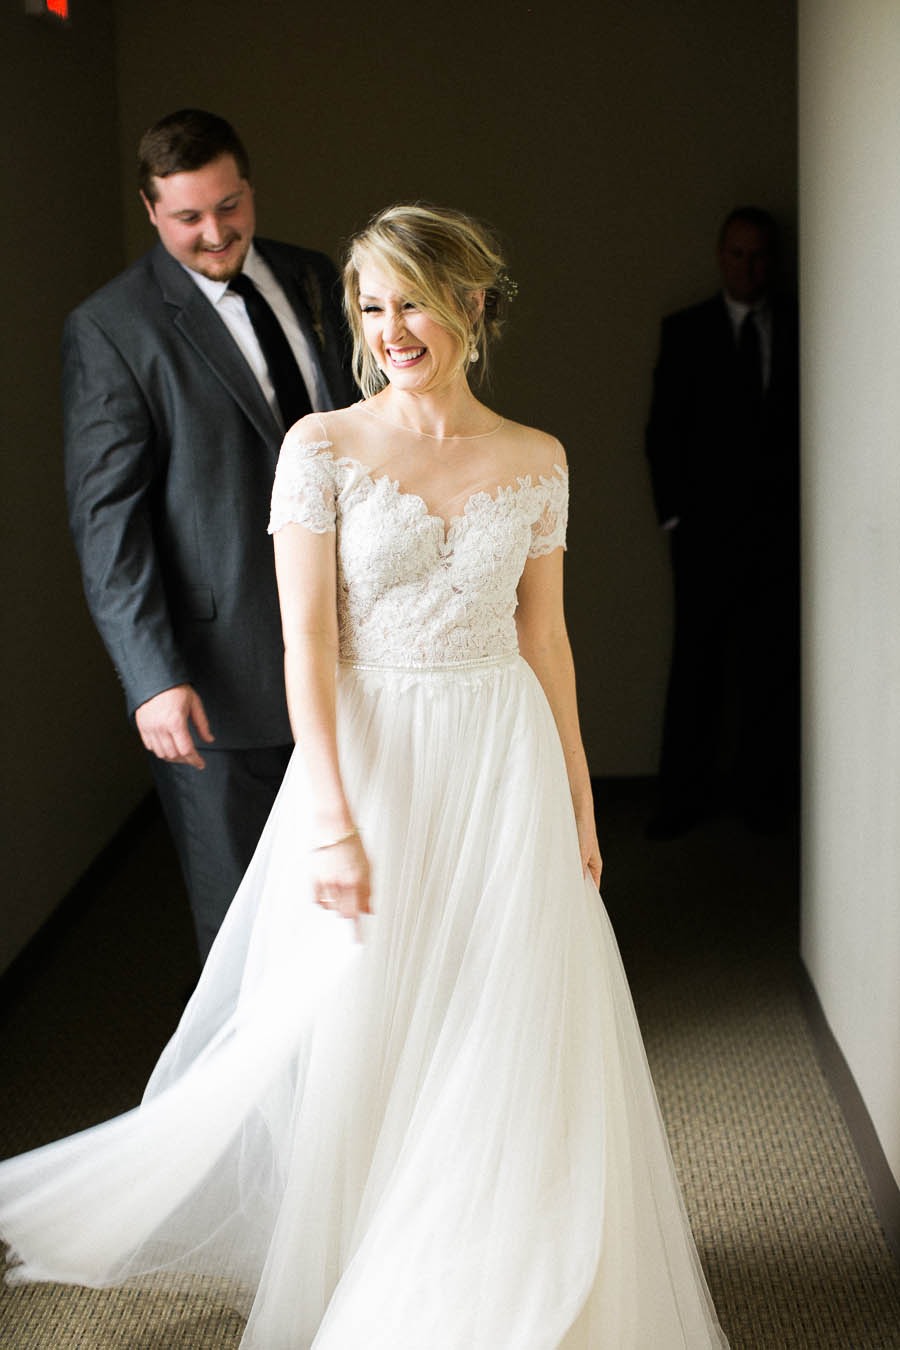 WEB_2maddie+thom huntsville film documentary natural wedding photographer ©2015abigailbobophotography-1-4.jpg